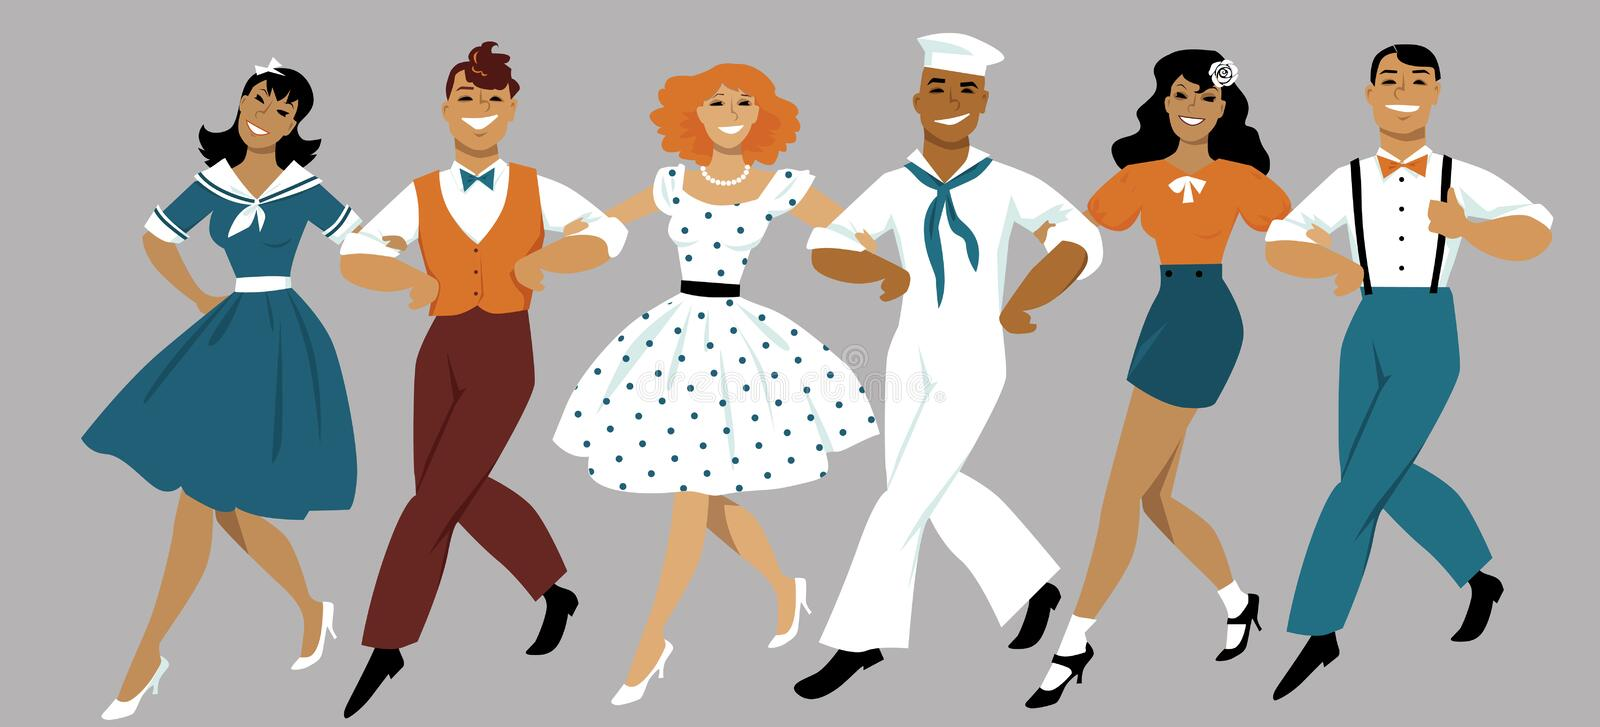 Chorus line. A chorus line of male and female performers dressed in vintage fashion dancing a routine in a classic musical theater, EPS 8 vector illustration stock illustration